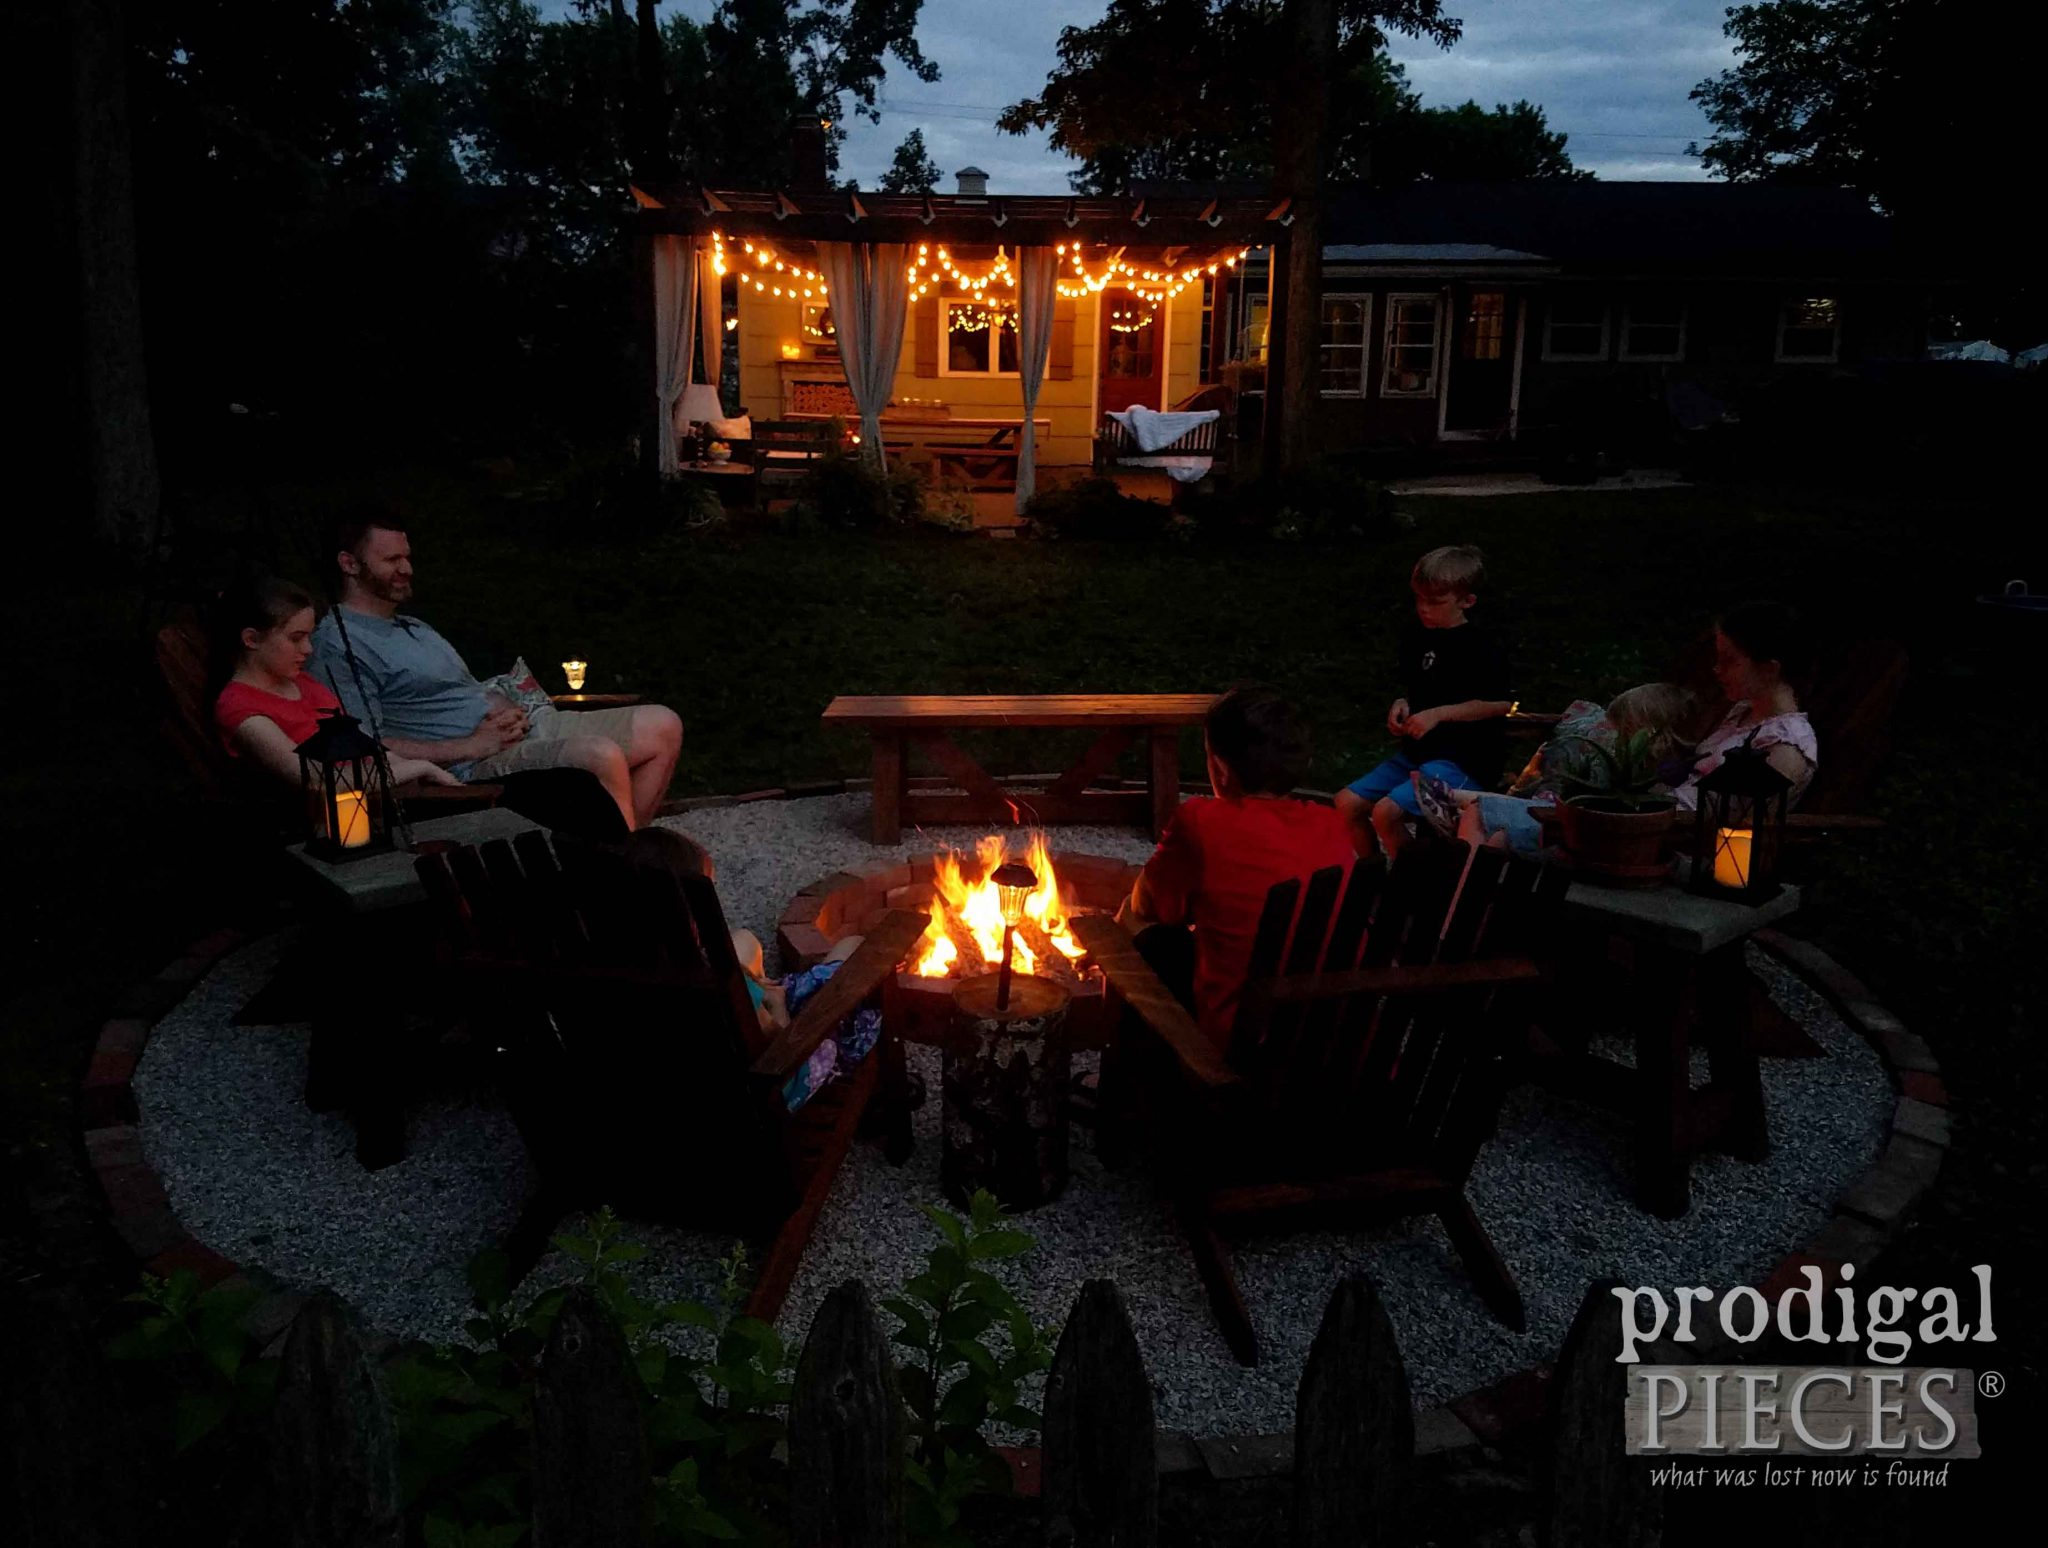 Family Gathered Around Backyard Fire Pit by Prodigal Pieces | prodigalpieces.com